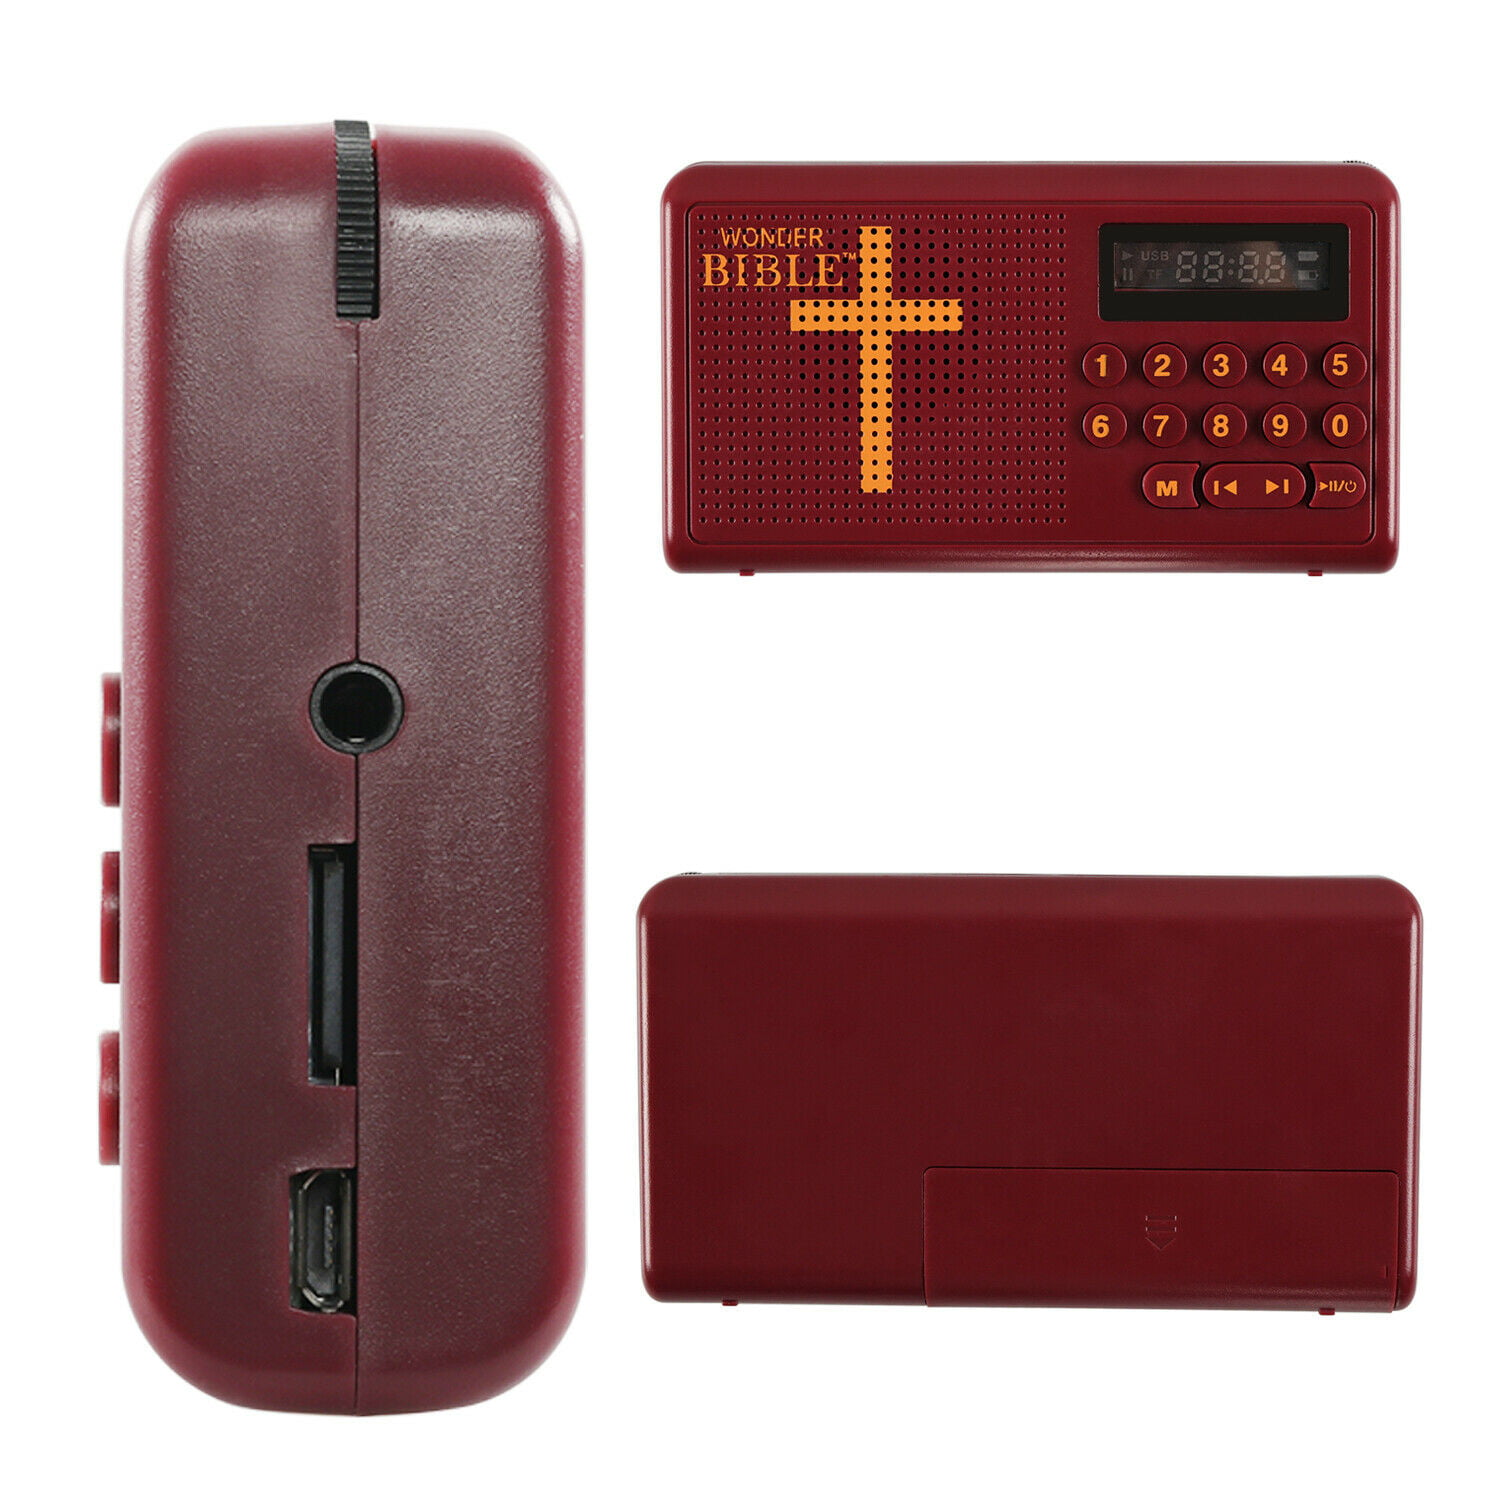 White A portable audio player that can listen to the Bible from anywhere